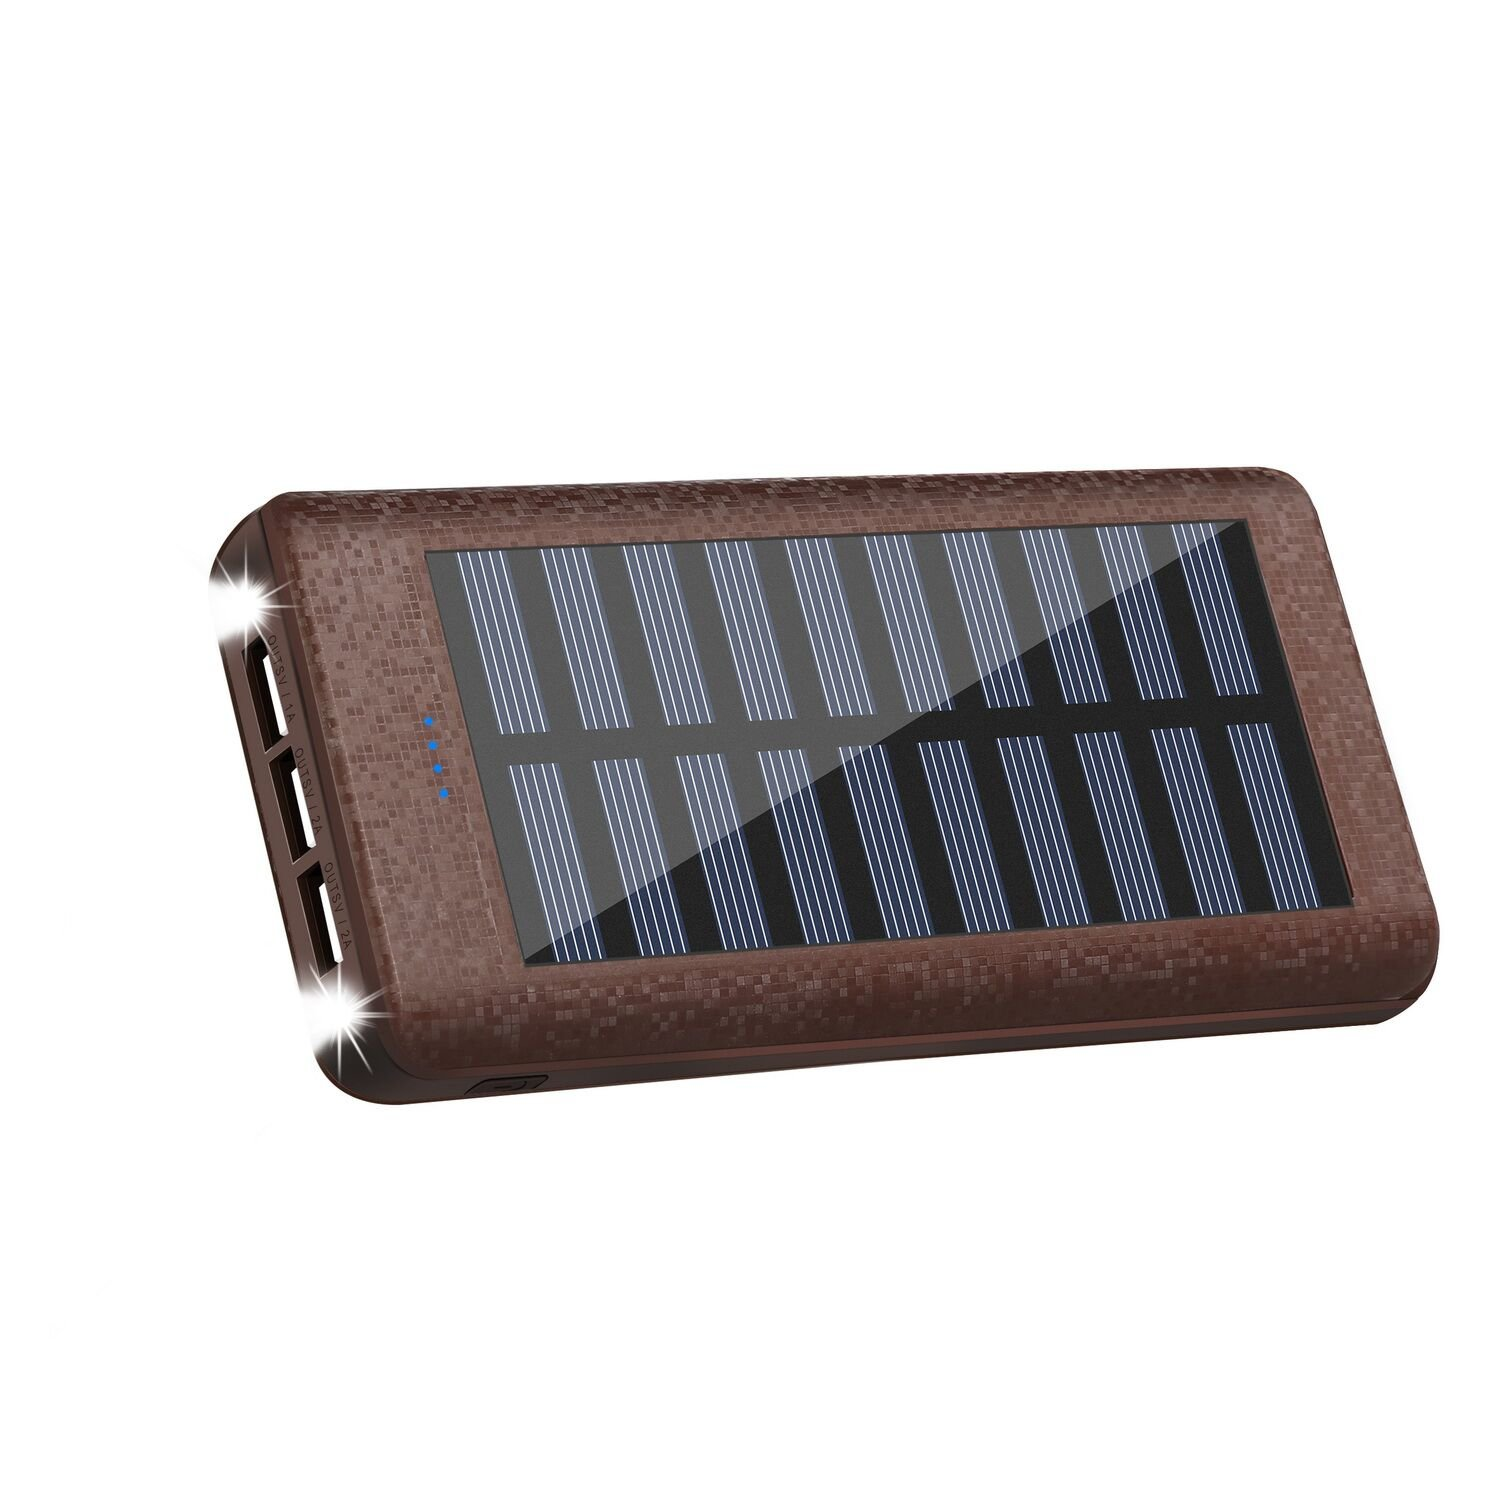 Solar charger Power Bank 24000mah Huge Capacity Portable Charger 3 Output Ports (2A+2A+1A) Backup Battery Pack For iPhone iPad Samsung HTC Cellphones Tablet And More by Rolisa